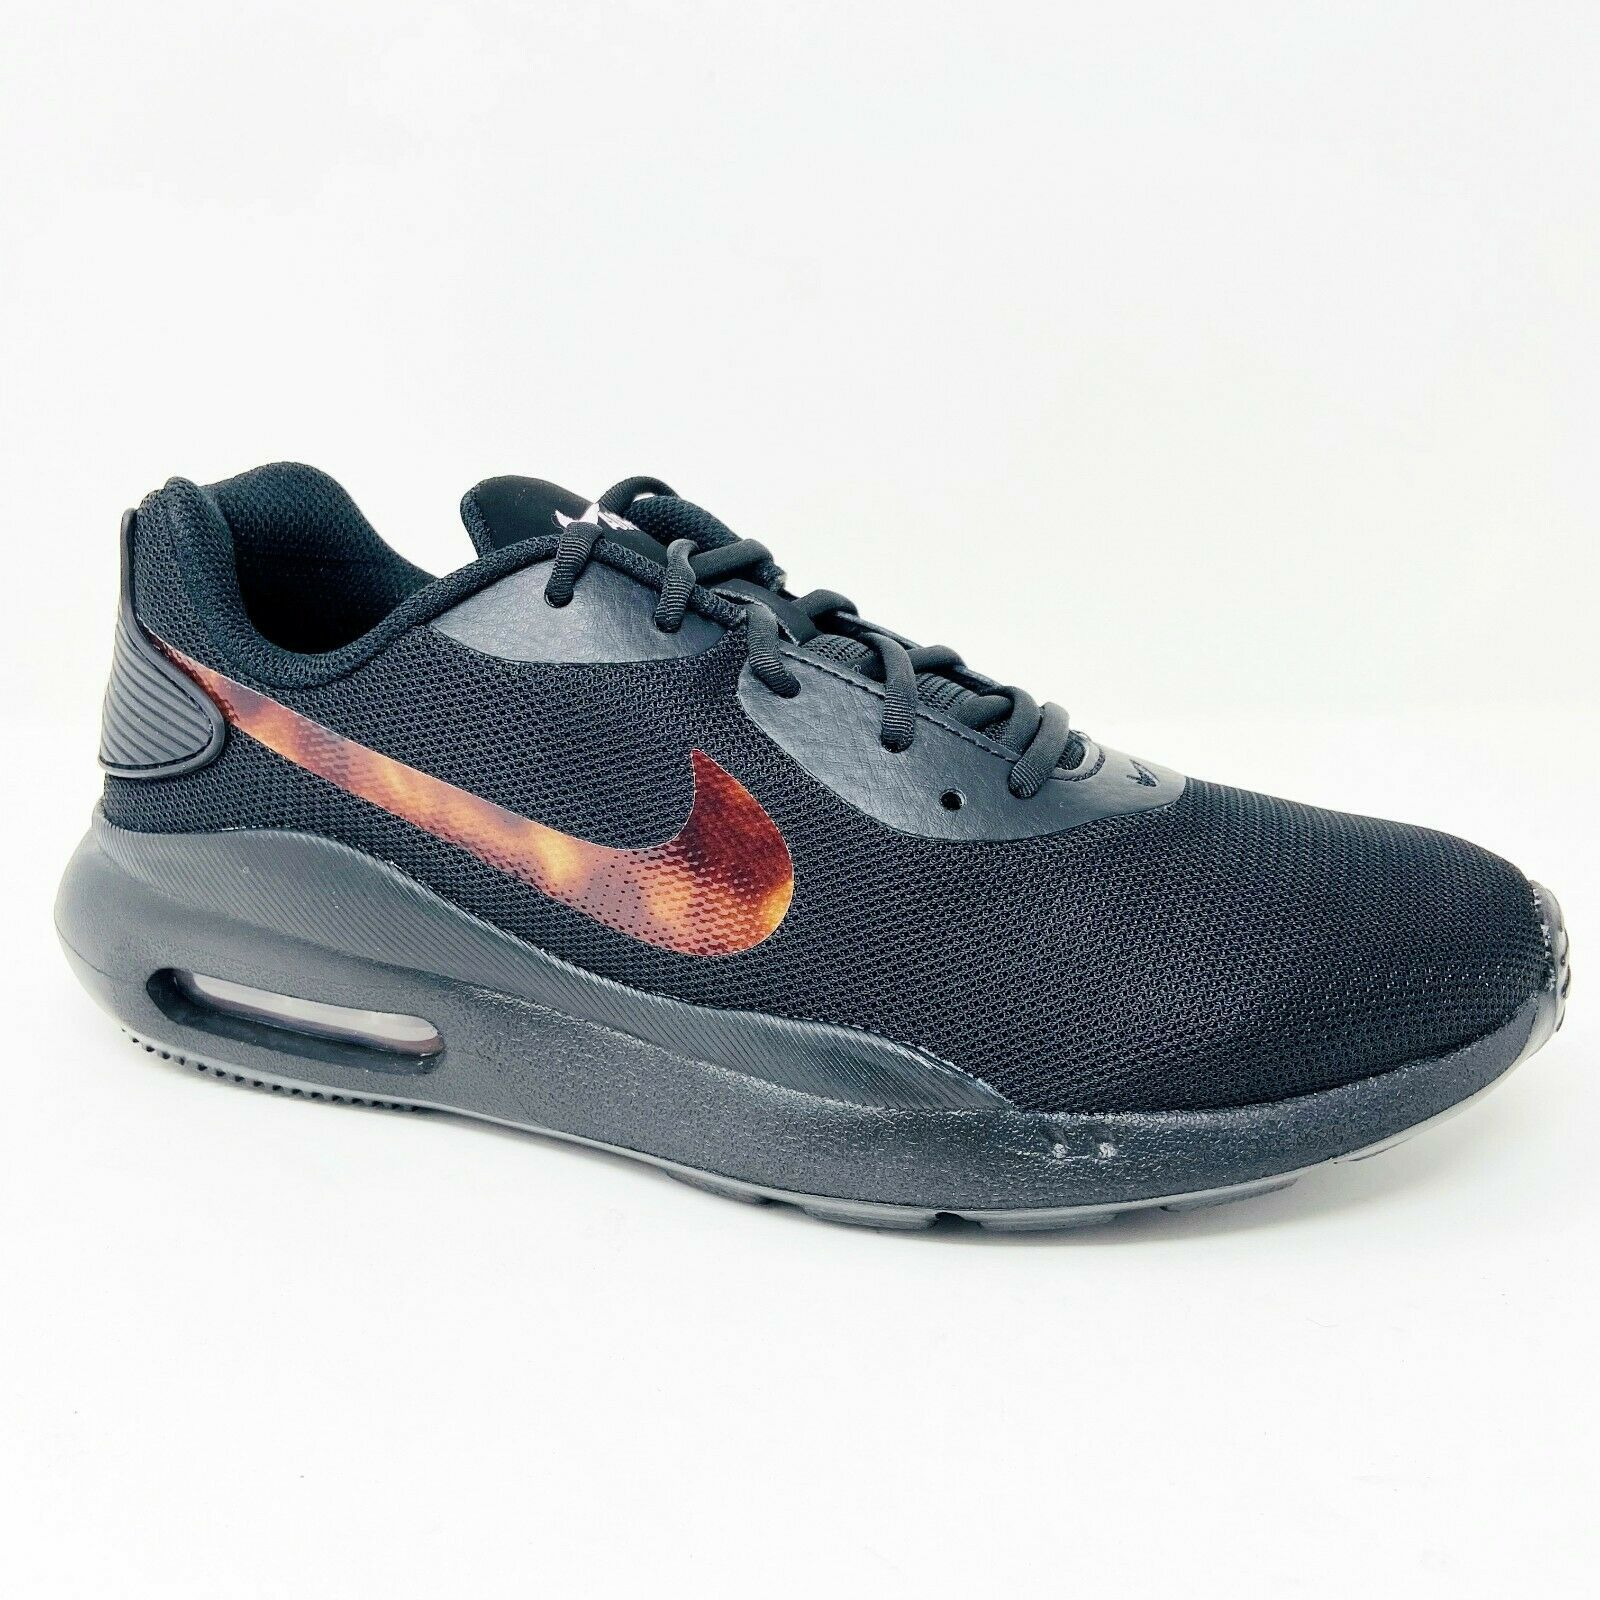 Primary image for Nike Air Max Oketo Black Barely Rose Womens Athletic Running Shoes CU4763 001